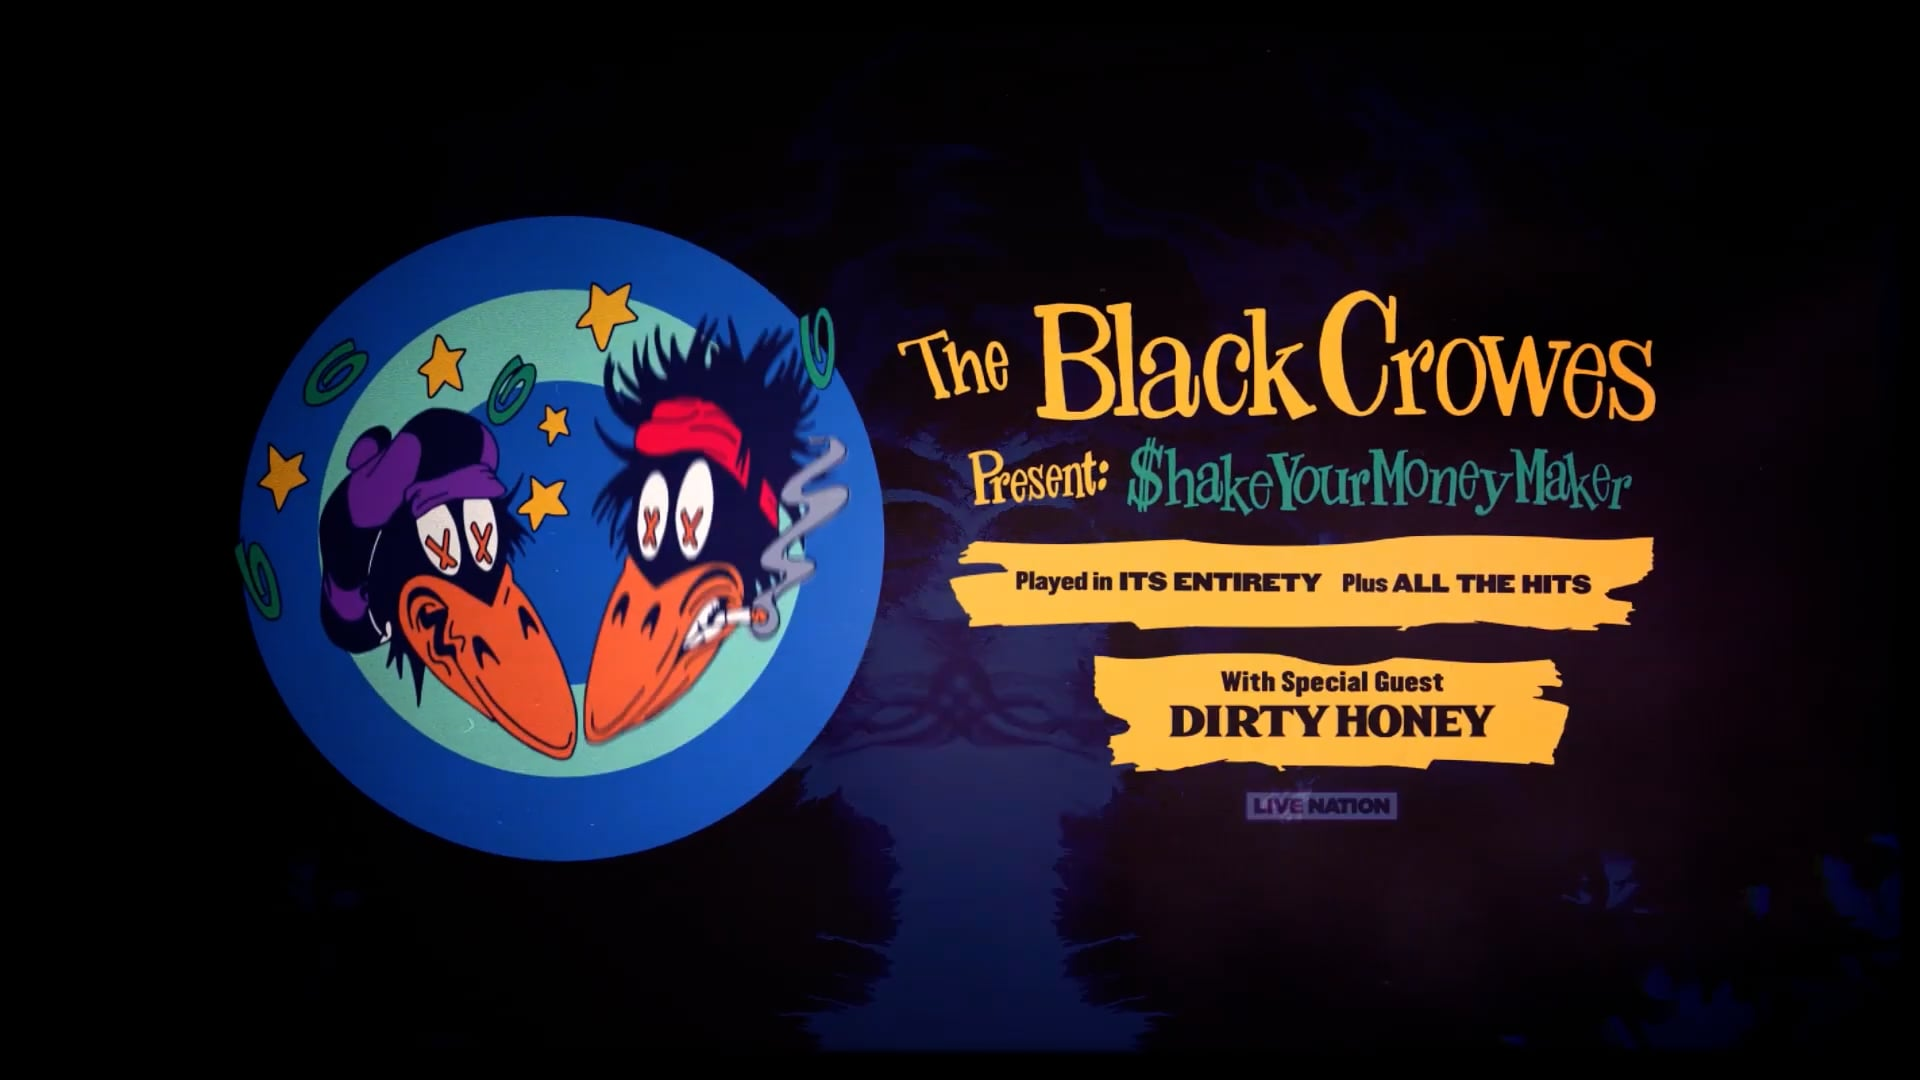 Live Nation: The Black Crowes Shake Your Money Maker Tour Promo